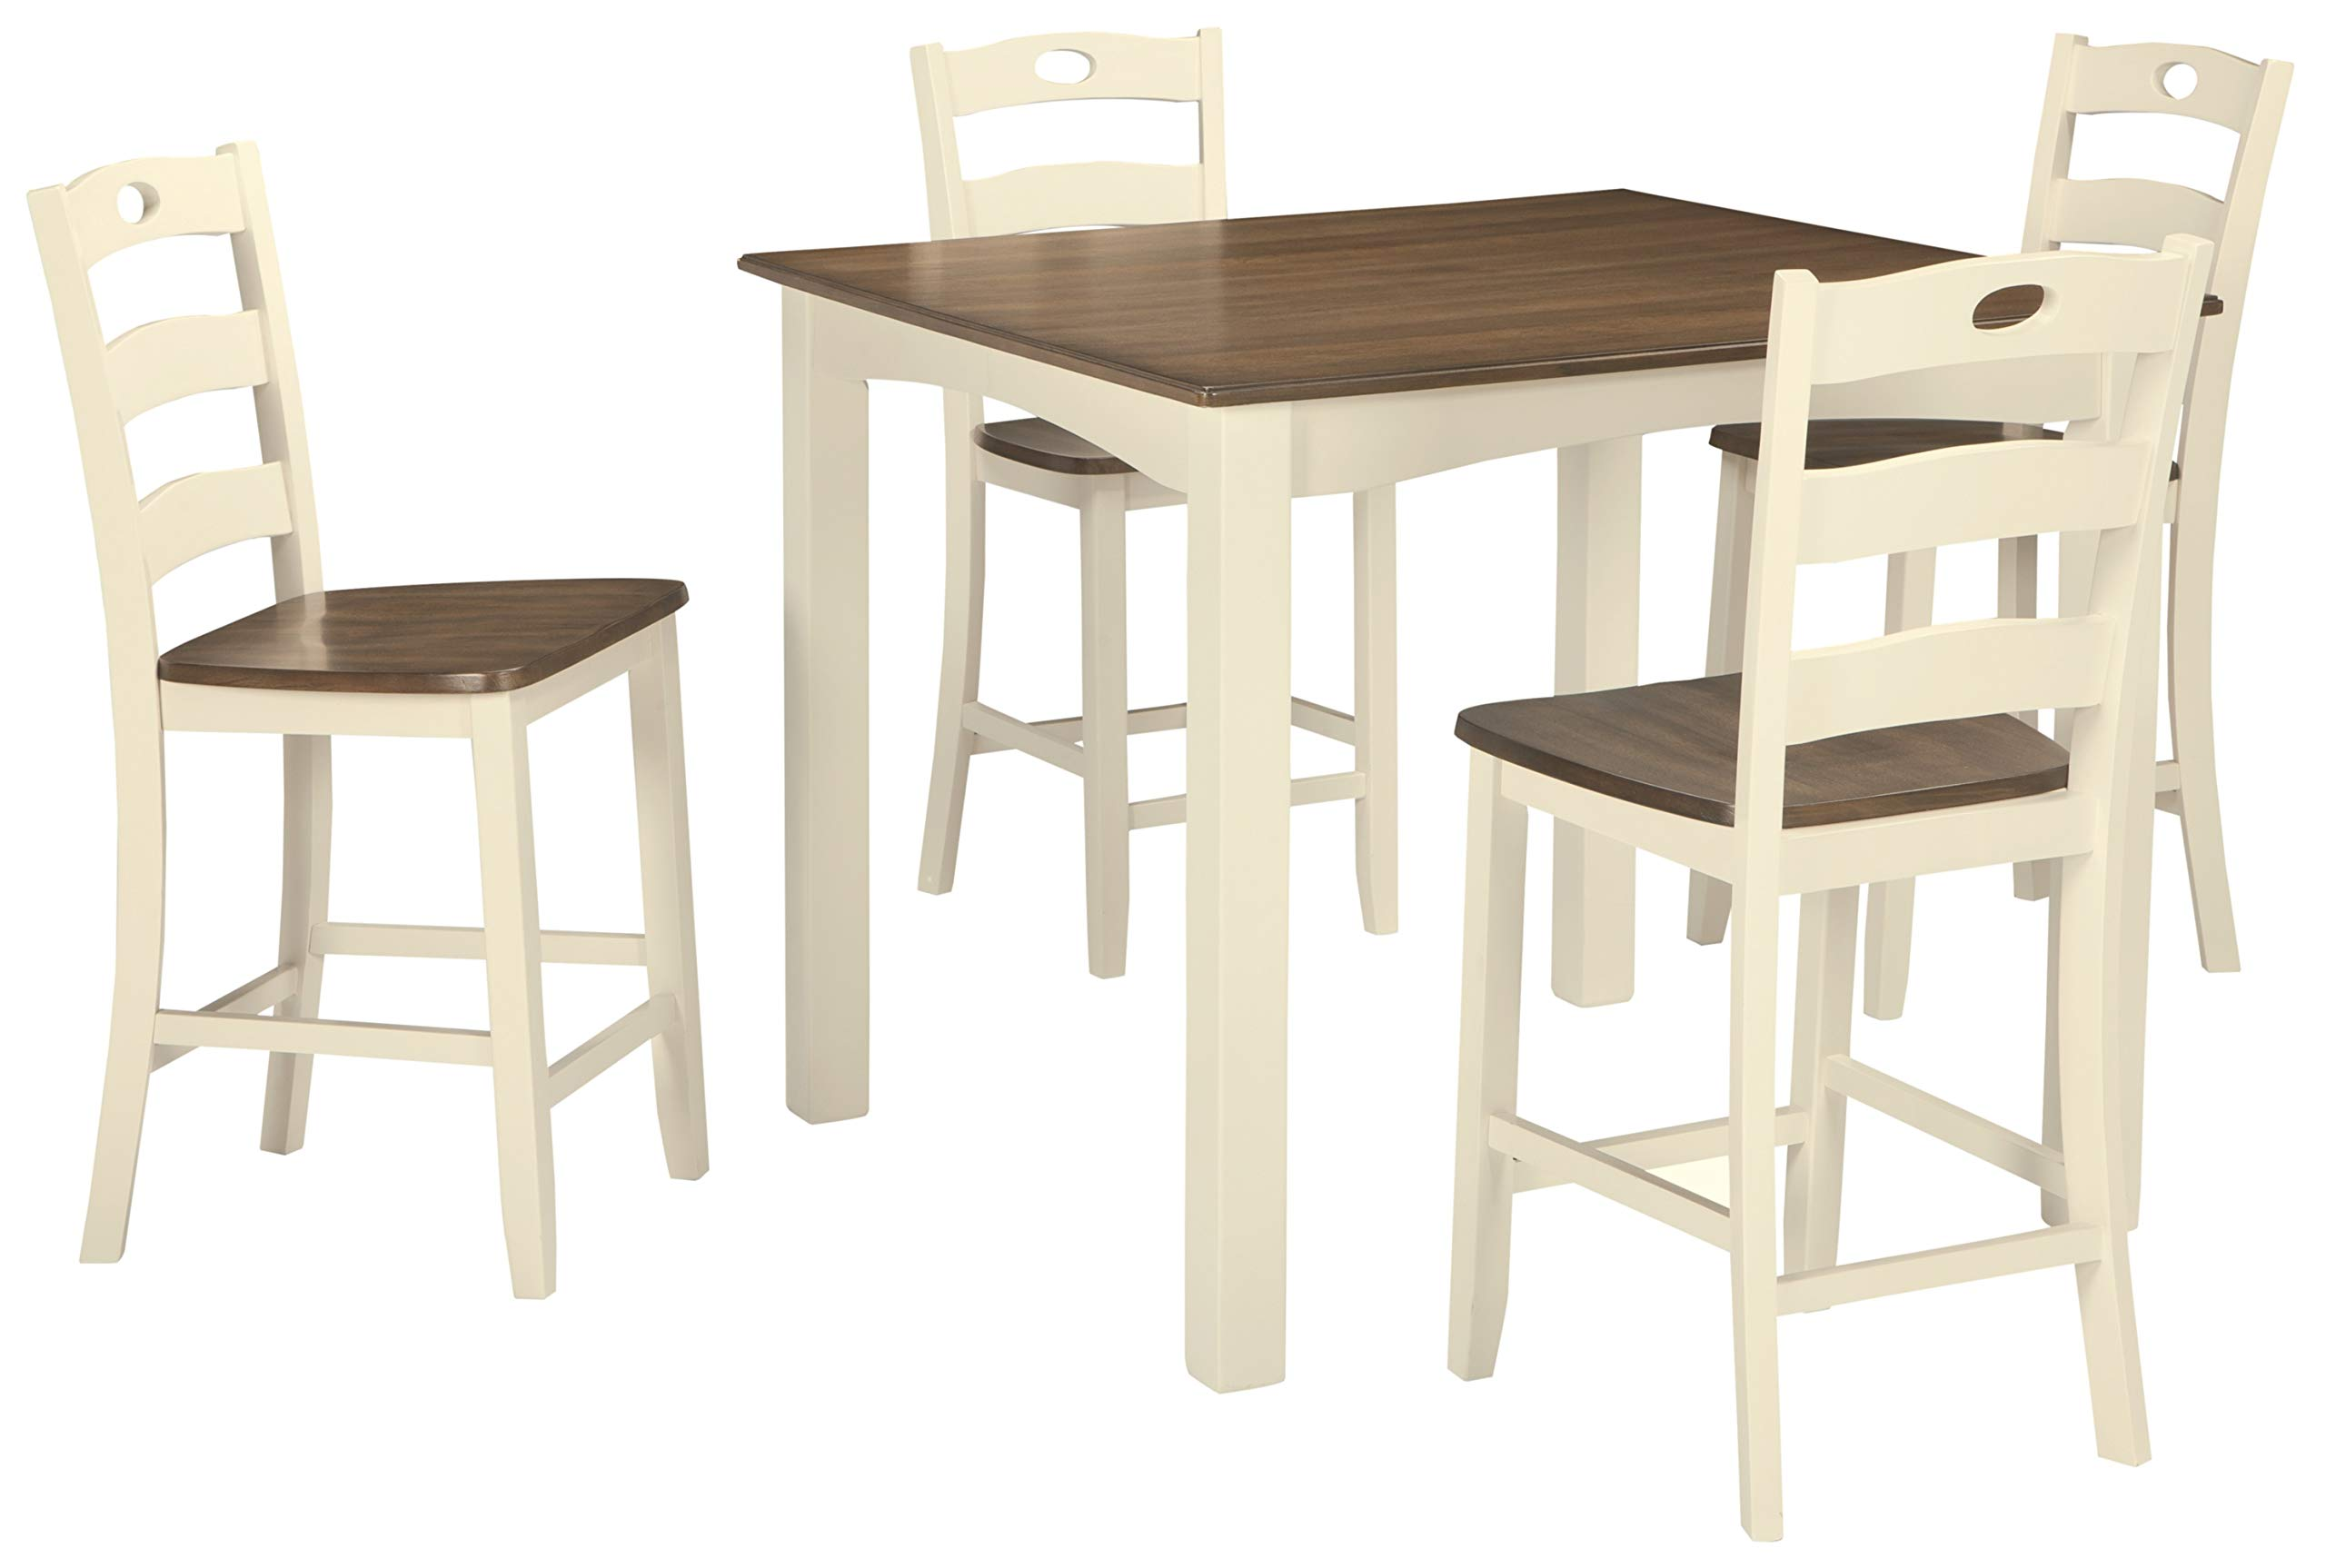 Signature Design by Ashley D335-223 Woodanville Counter Height Dining Room Table and Bar Stools (Set of 5), Cream/Brown by Signature Design by Ashley